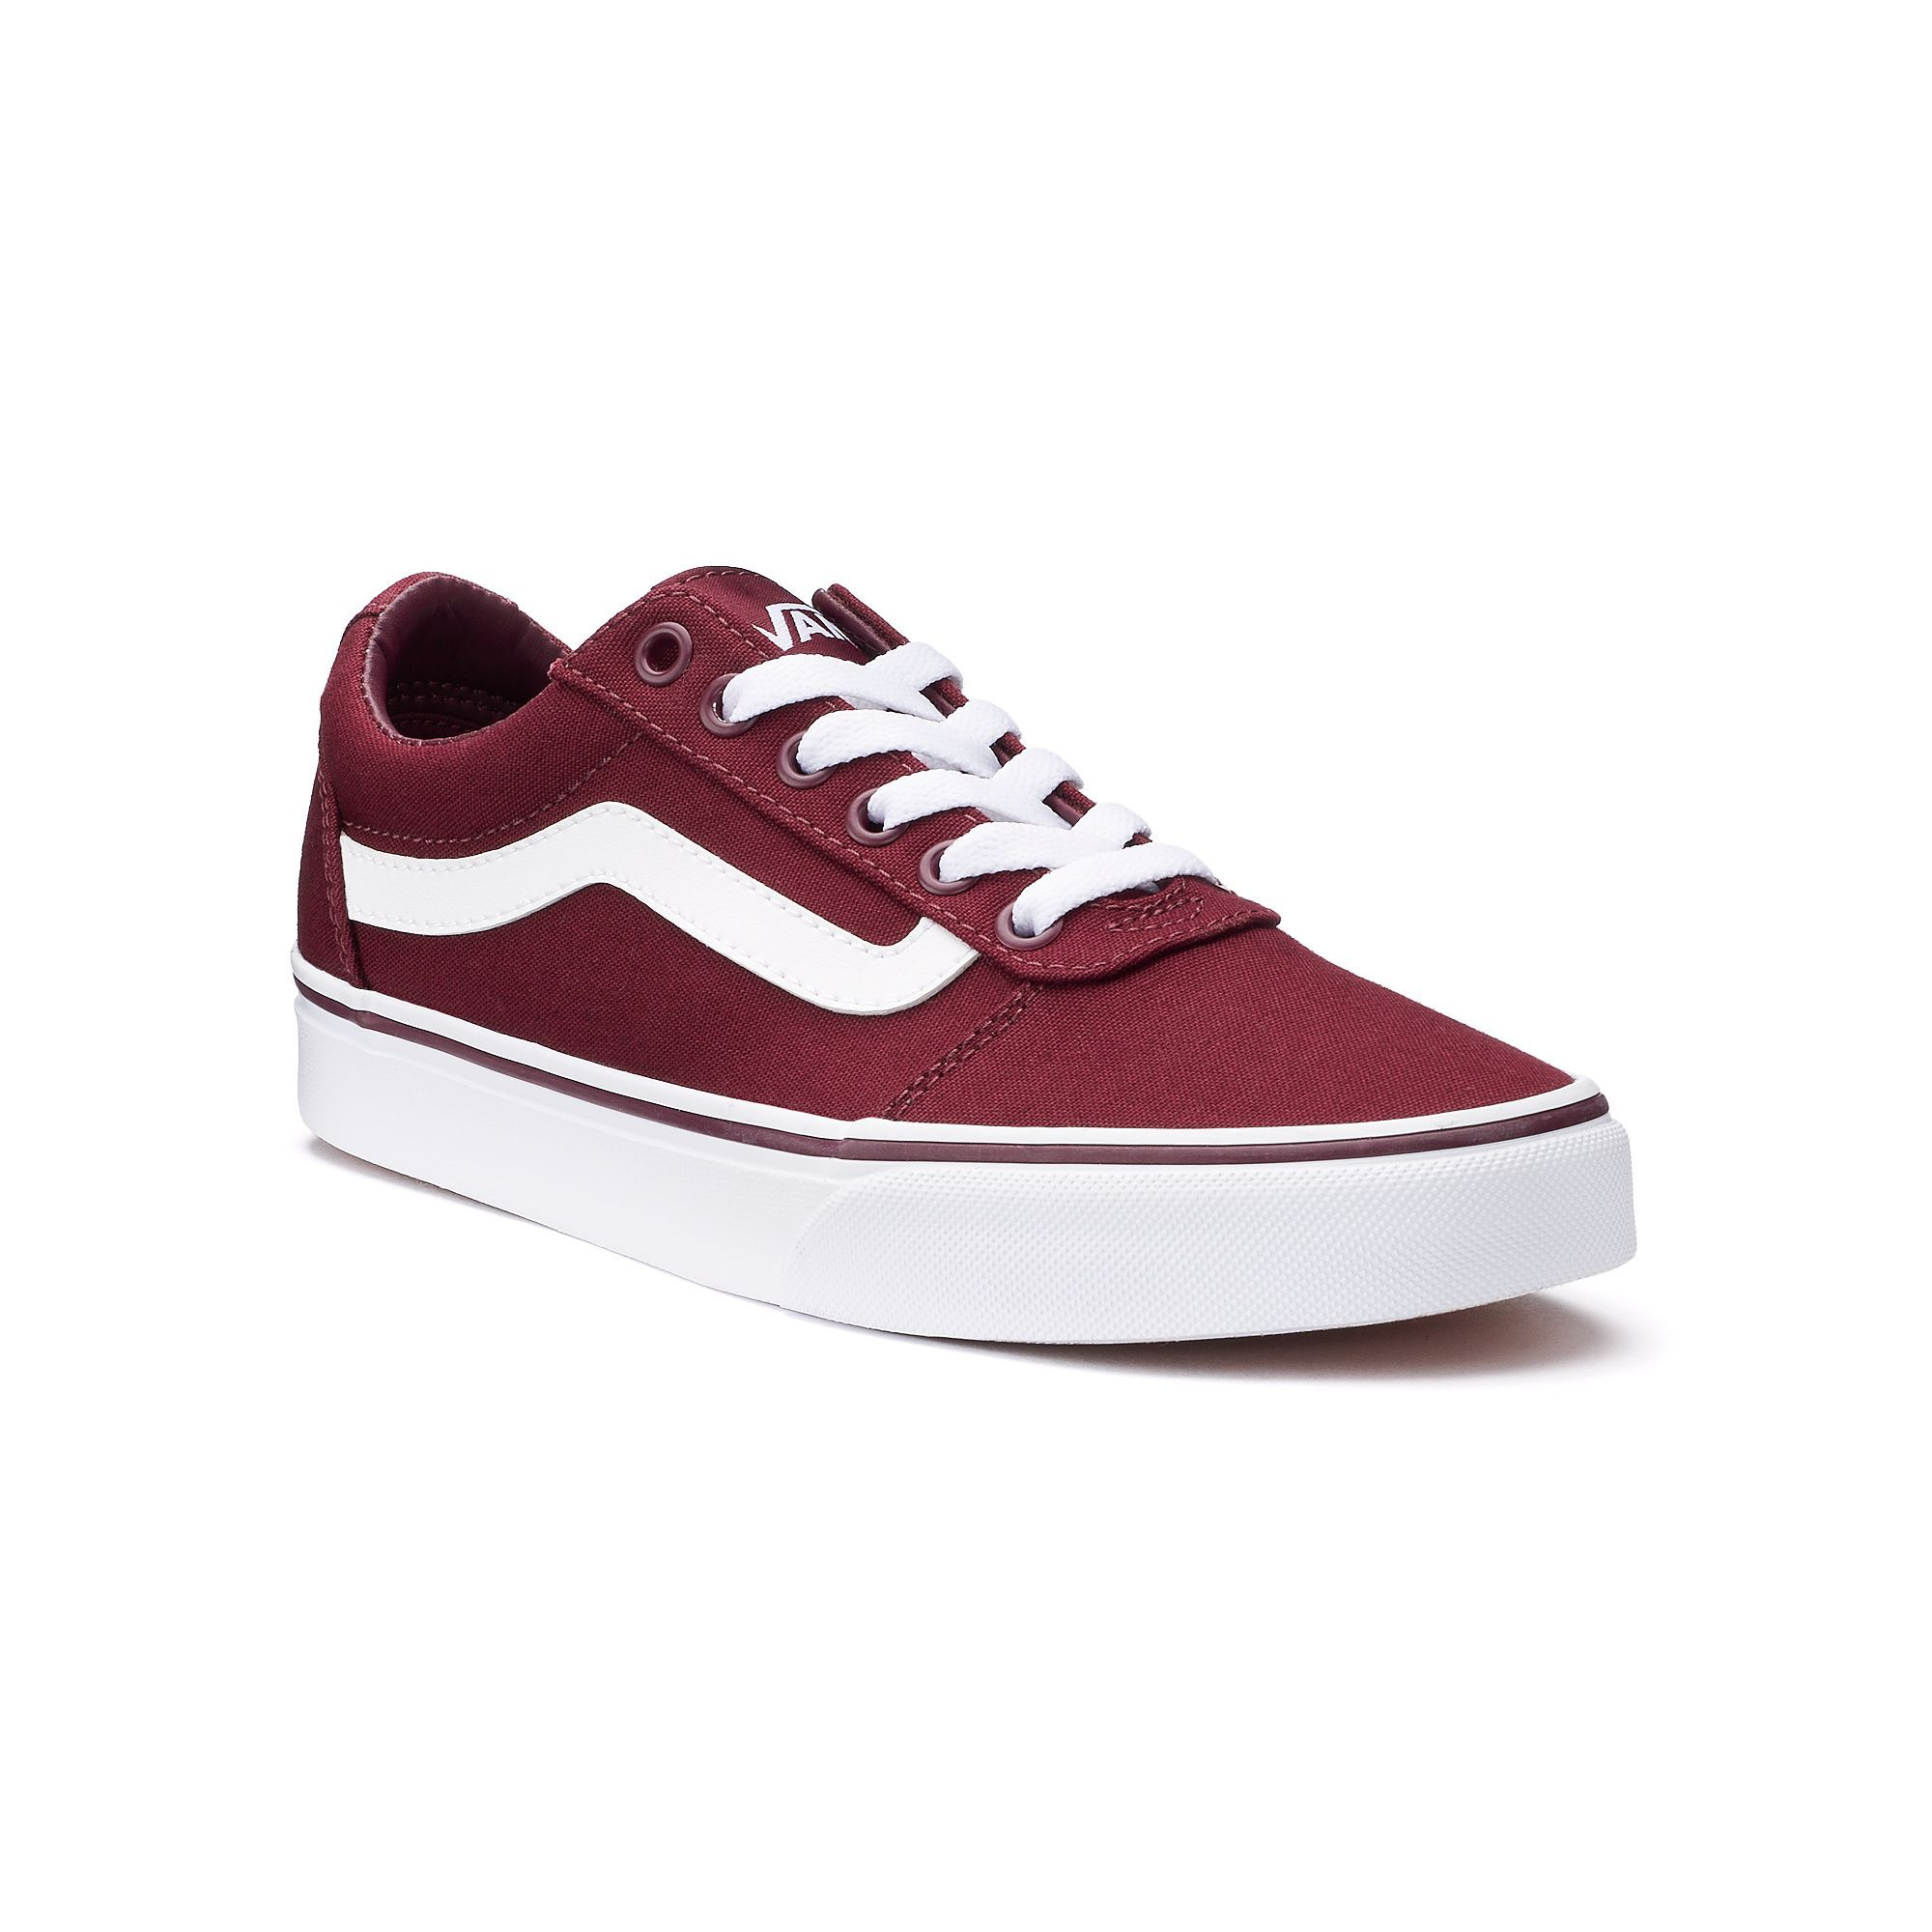 31162937474a00 Vans Ward Women s Canvas Skate Shoes